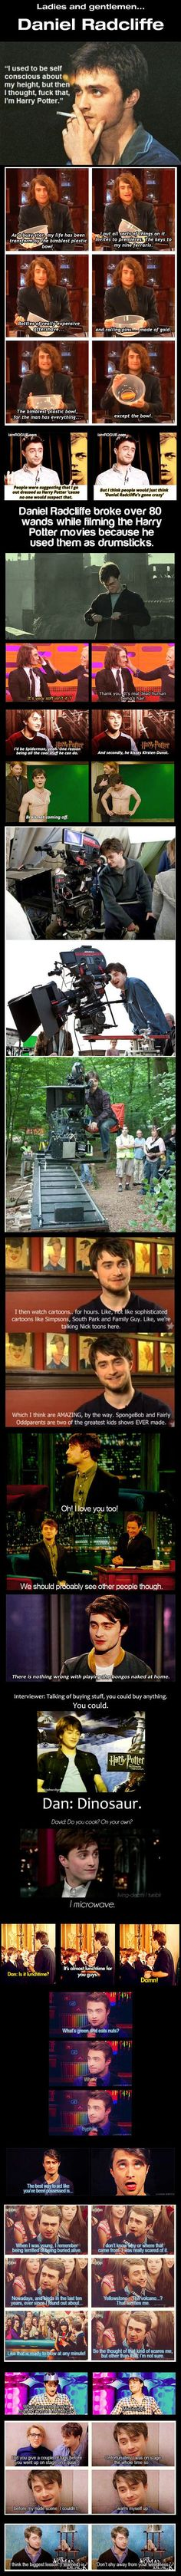 Ladies and Gentlemen...Daniel Radcliffe more funny pics on facebook: https://www.facebook.com/yourfunnypics101 #compartirvideos #funnypictures